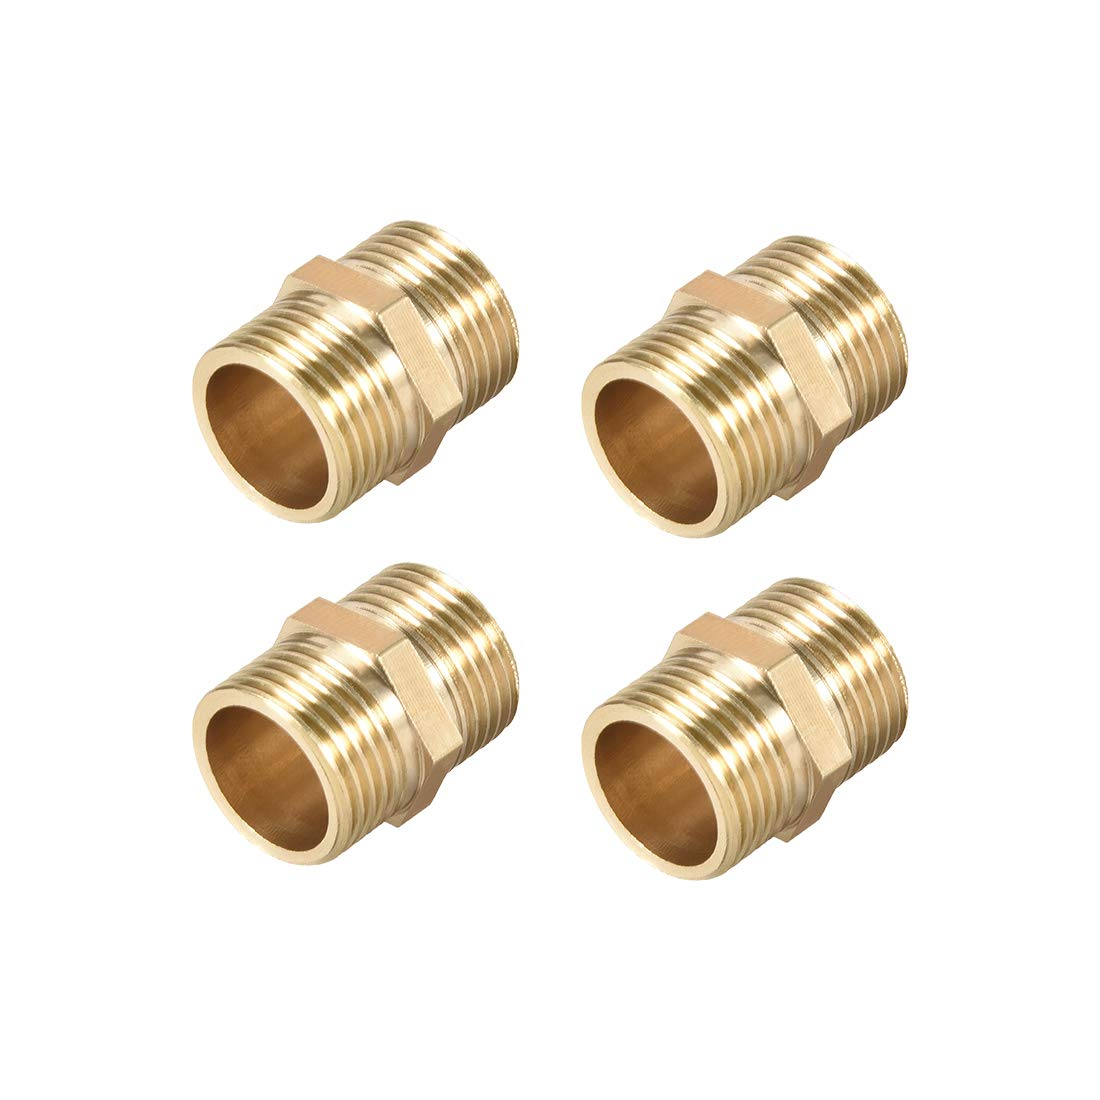 uxcell Brass Pipe Fitting Connector Straight HeX Nipple Coupler 3//8 x 3//8 G Male Thread Hose Fittings Gold Tone 4pcs